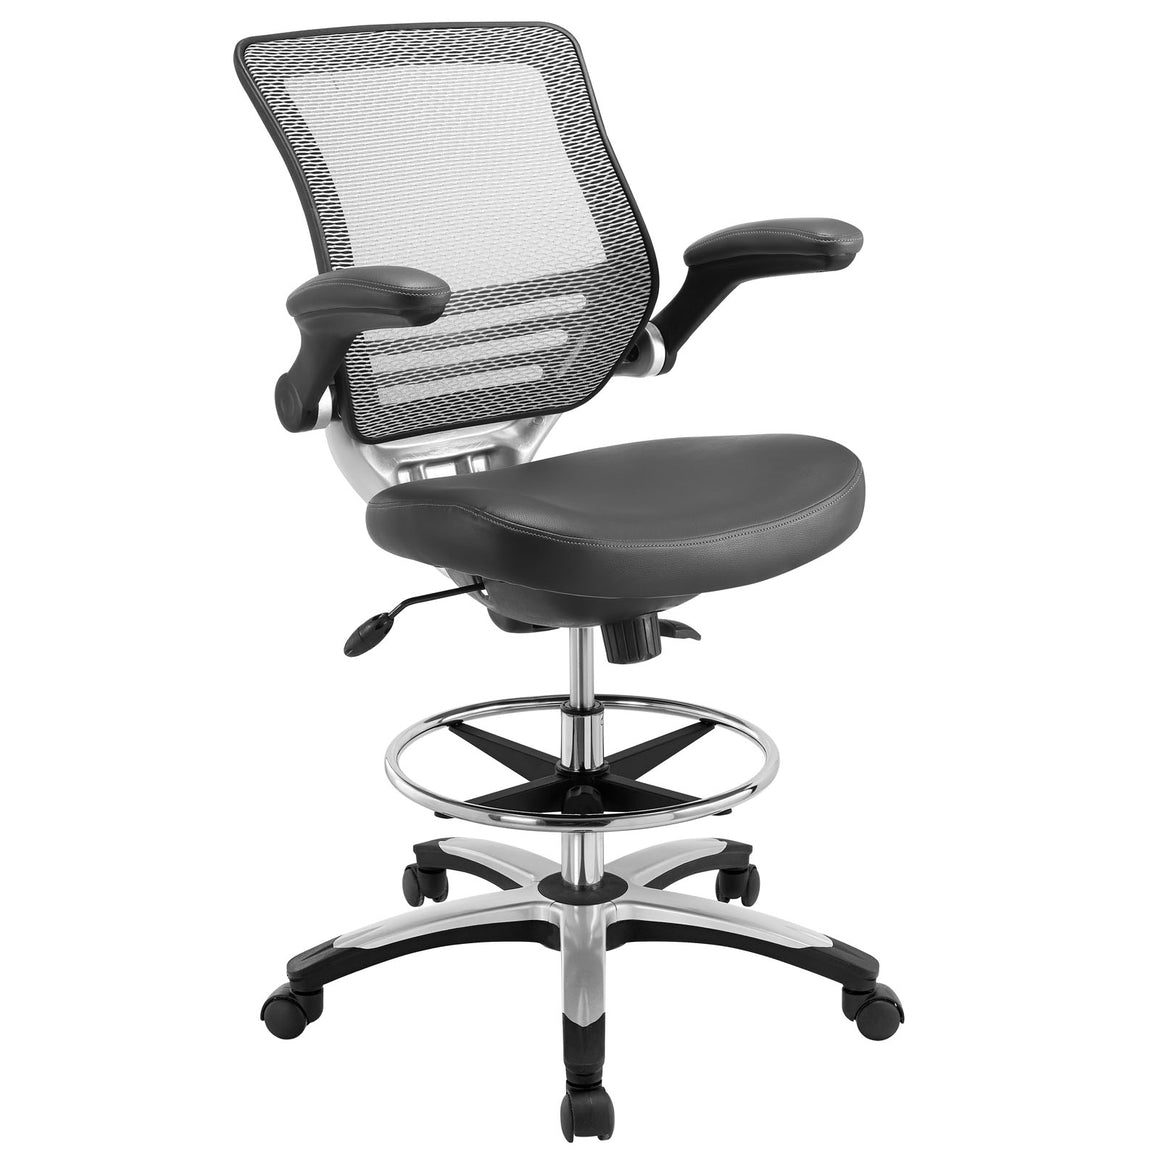 Edge Drafting Chair